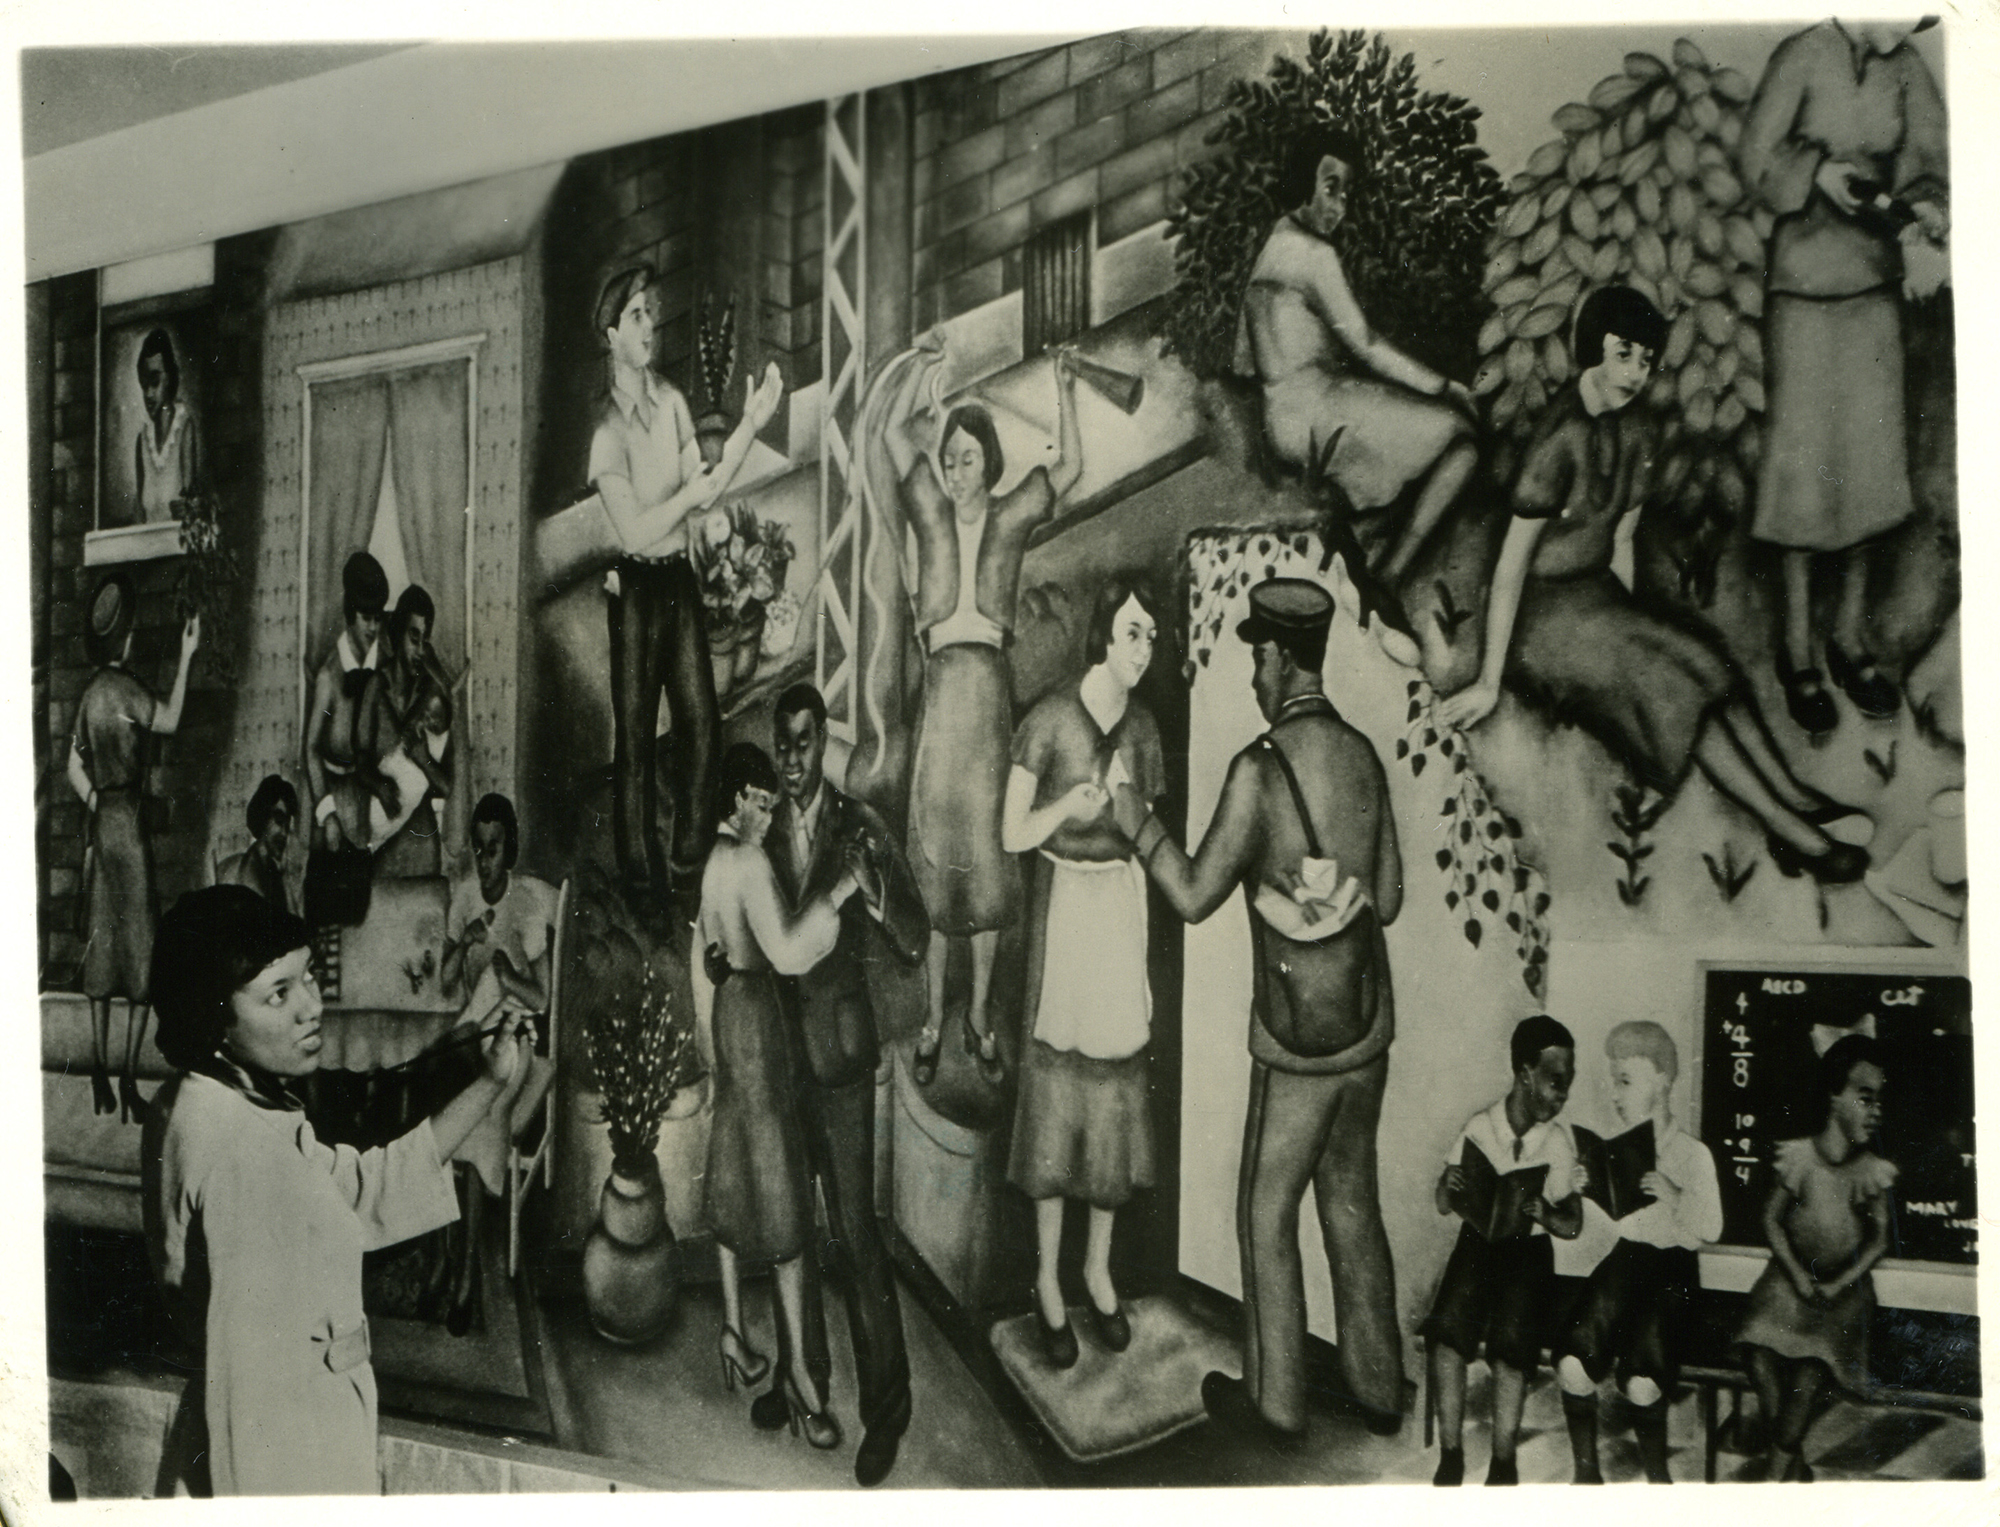 Georgette Seabrooke working On Her WPA Federal Art Project mural, Recreation In Harlem, for the Nurses' Recreation Room in Harlem Hospital. NARA ARCHIVES/SHUTTERSTOCK